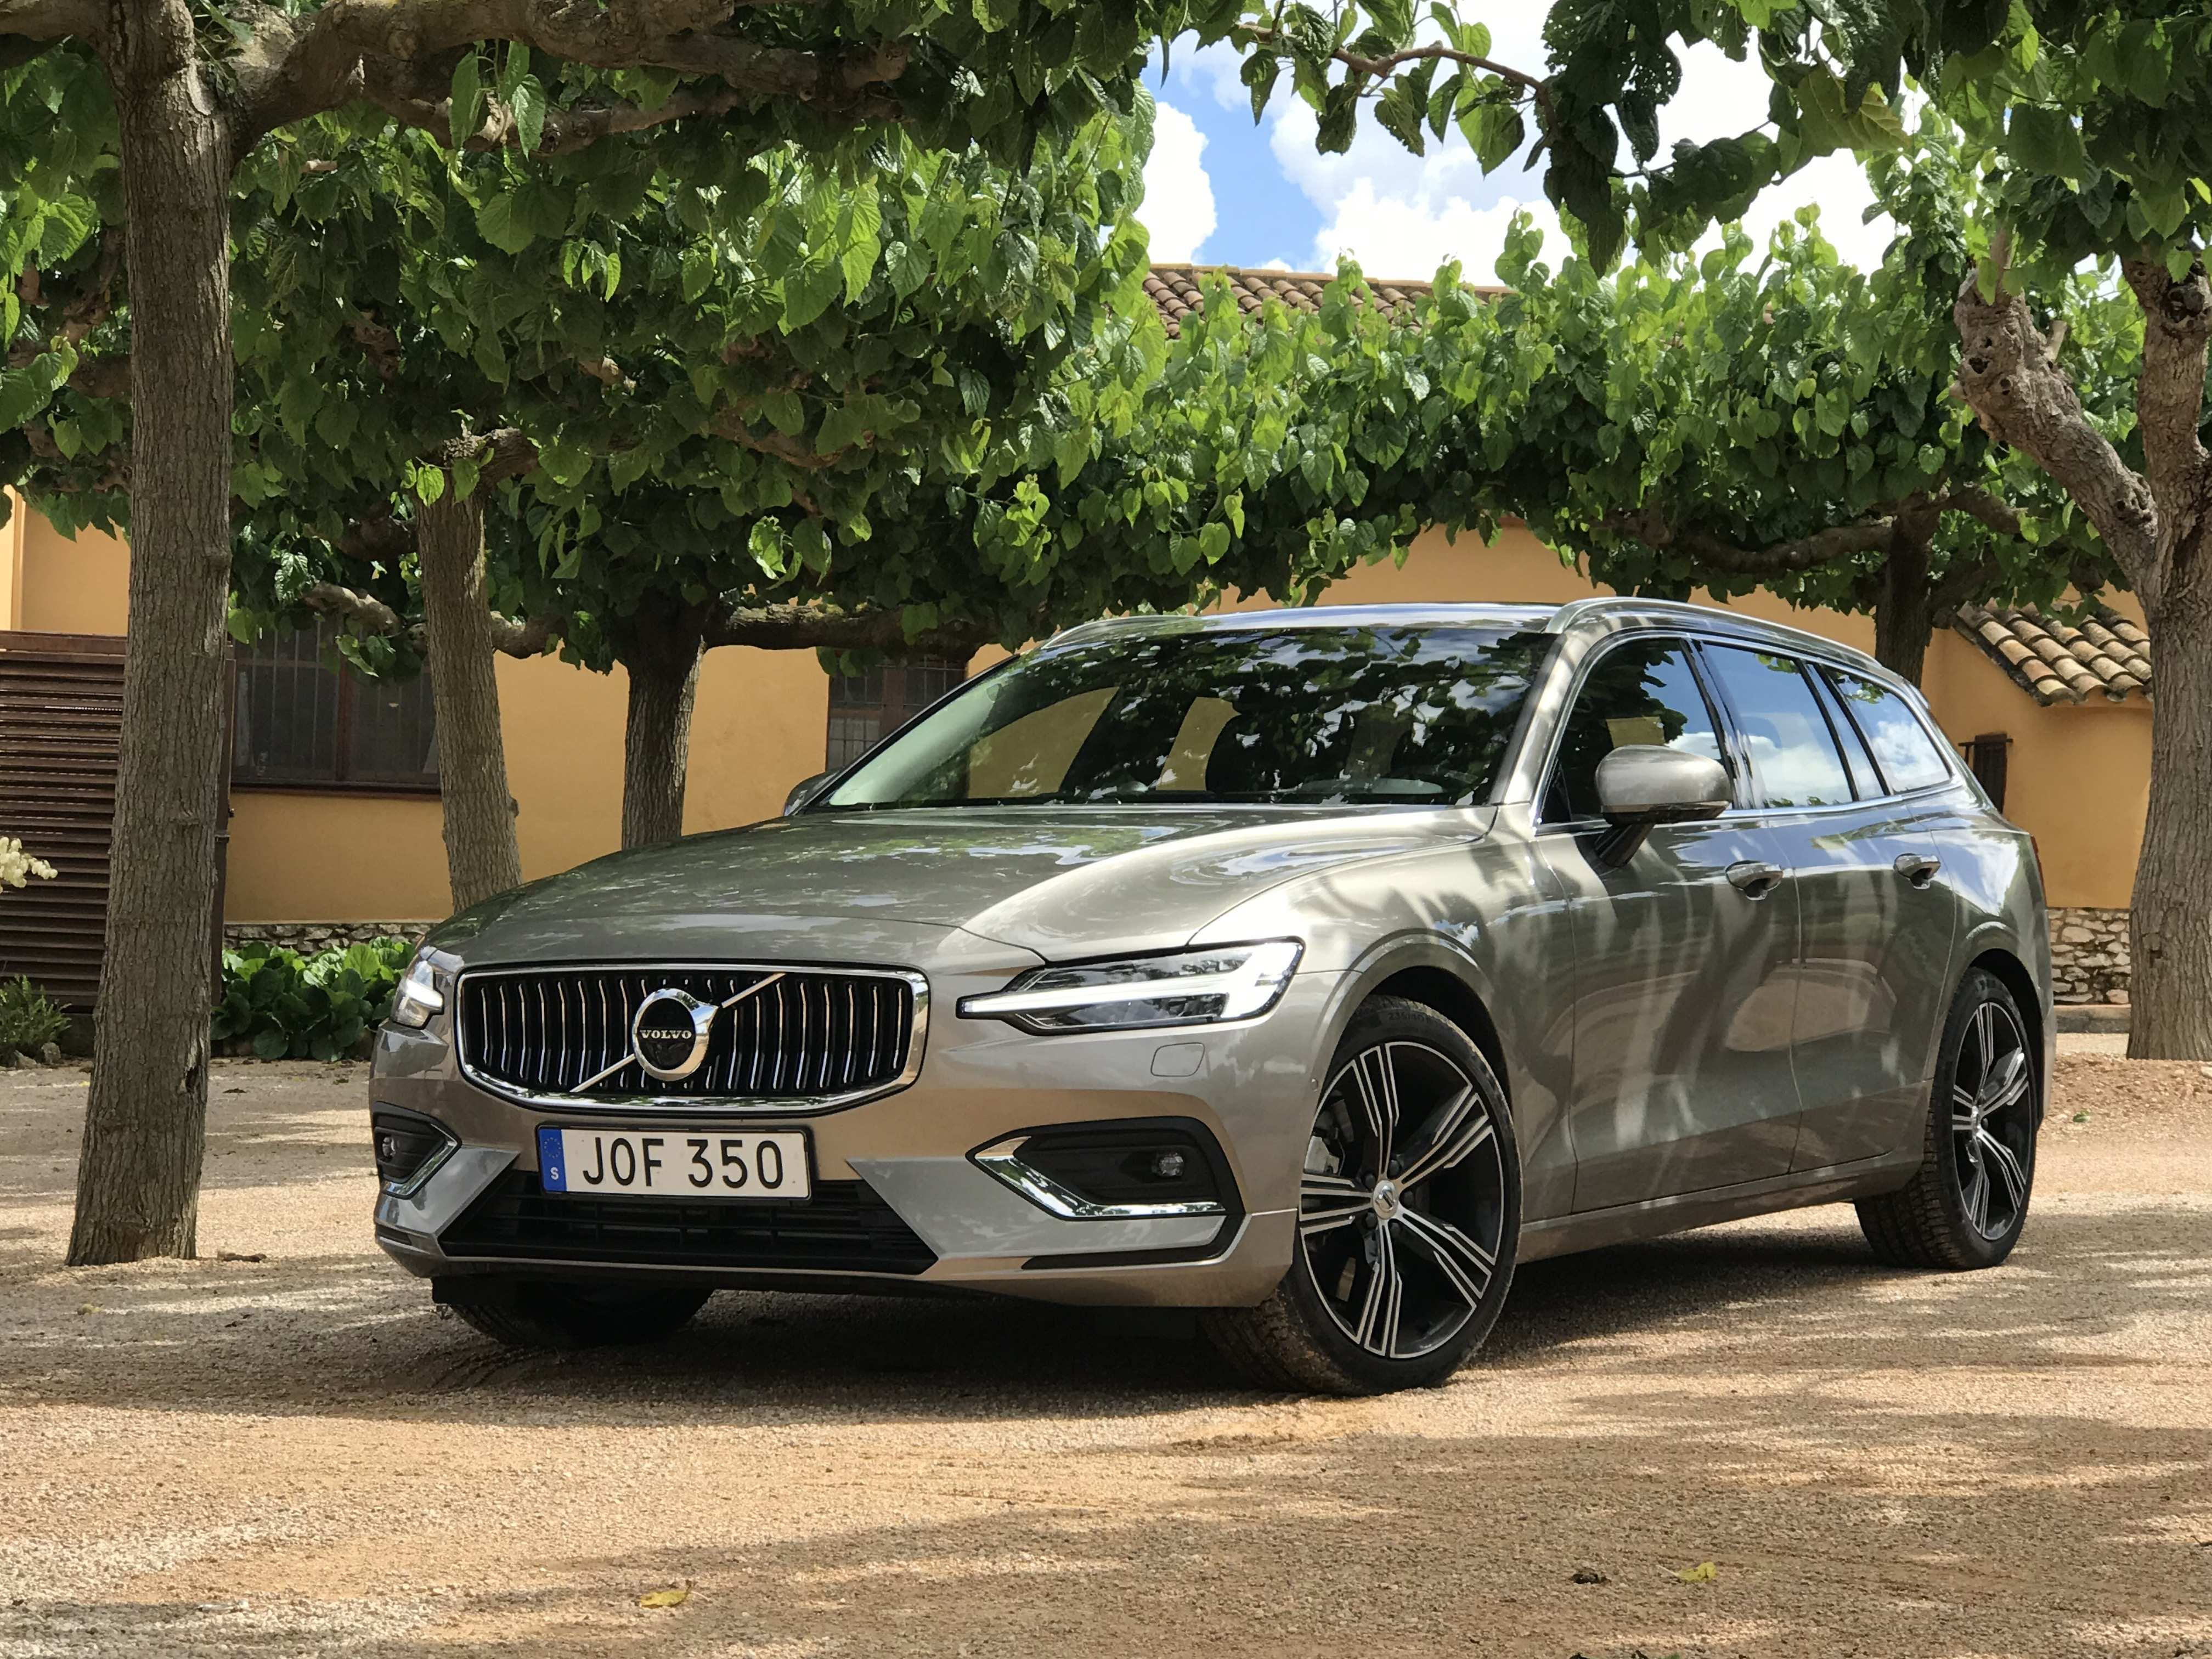 17 Gallery of New Volvo V60 2019 Ground Clearance New Engine Engine by New Volvo V60 2019 Ground Clearance New Engine